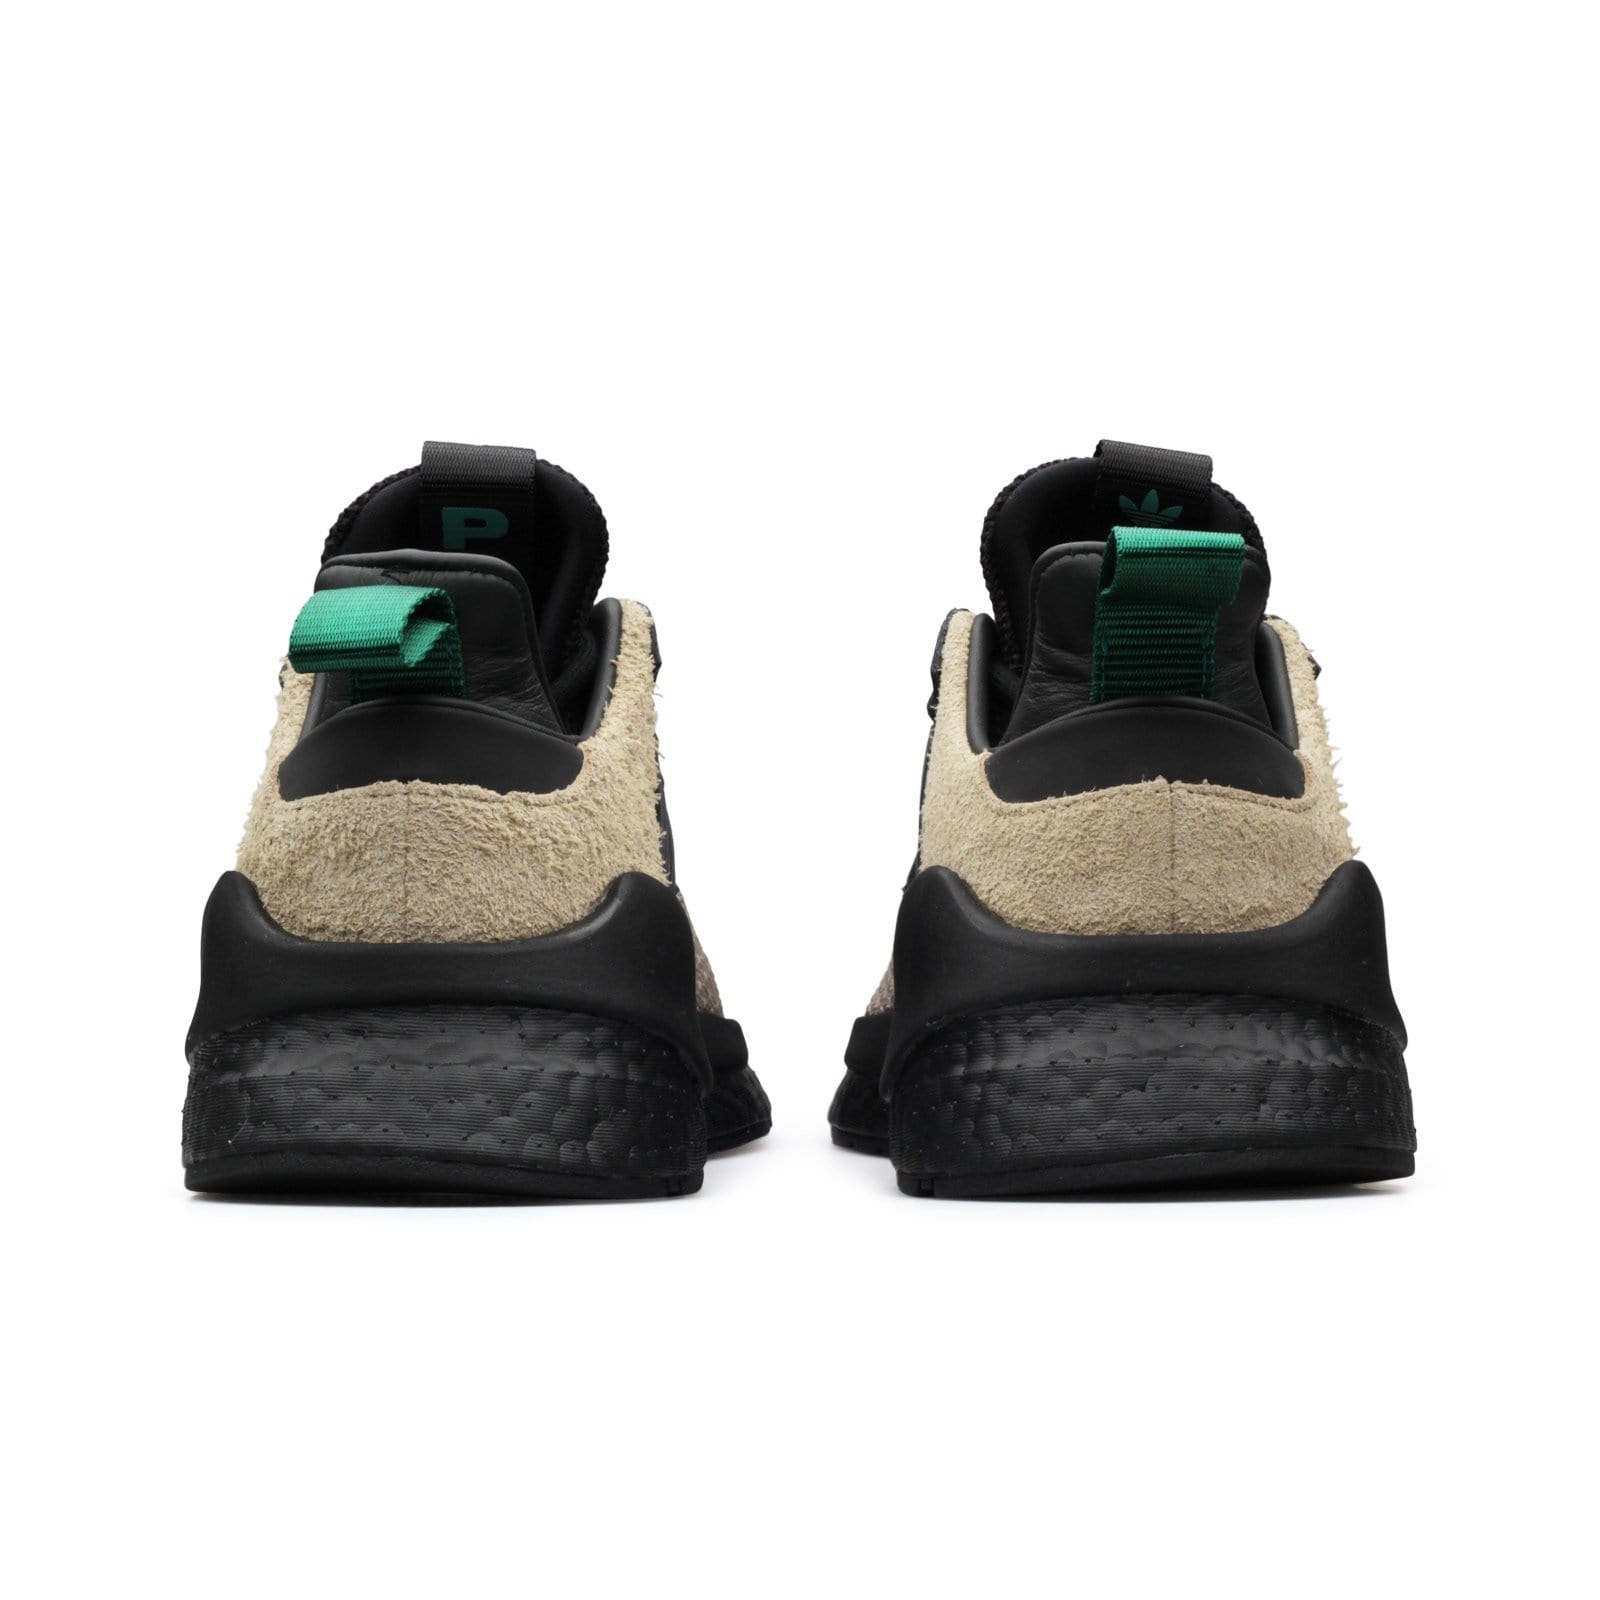 sneakers for cheap 815f8 e82c6 Adidas x PACKER EQT 9118 Core BlackSub GreenCargo